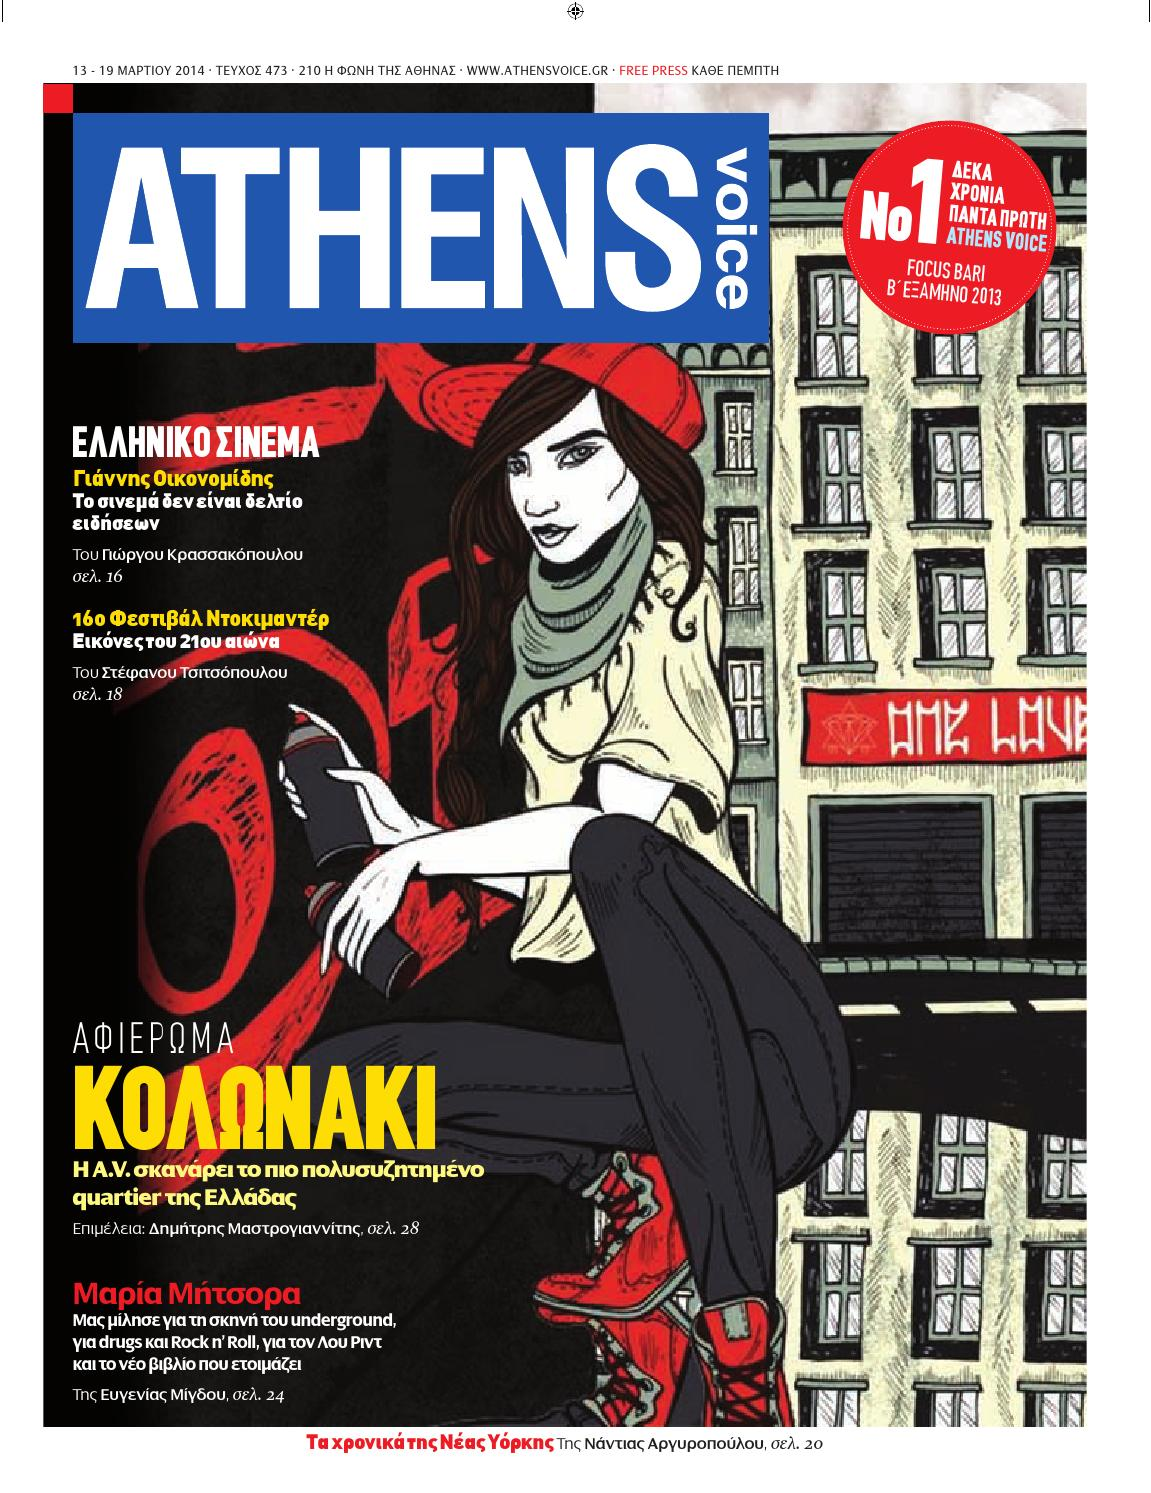 Athens Voice 473 by Athens Voice - issuu 72c198fda3b